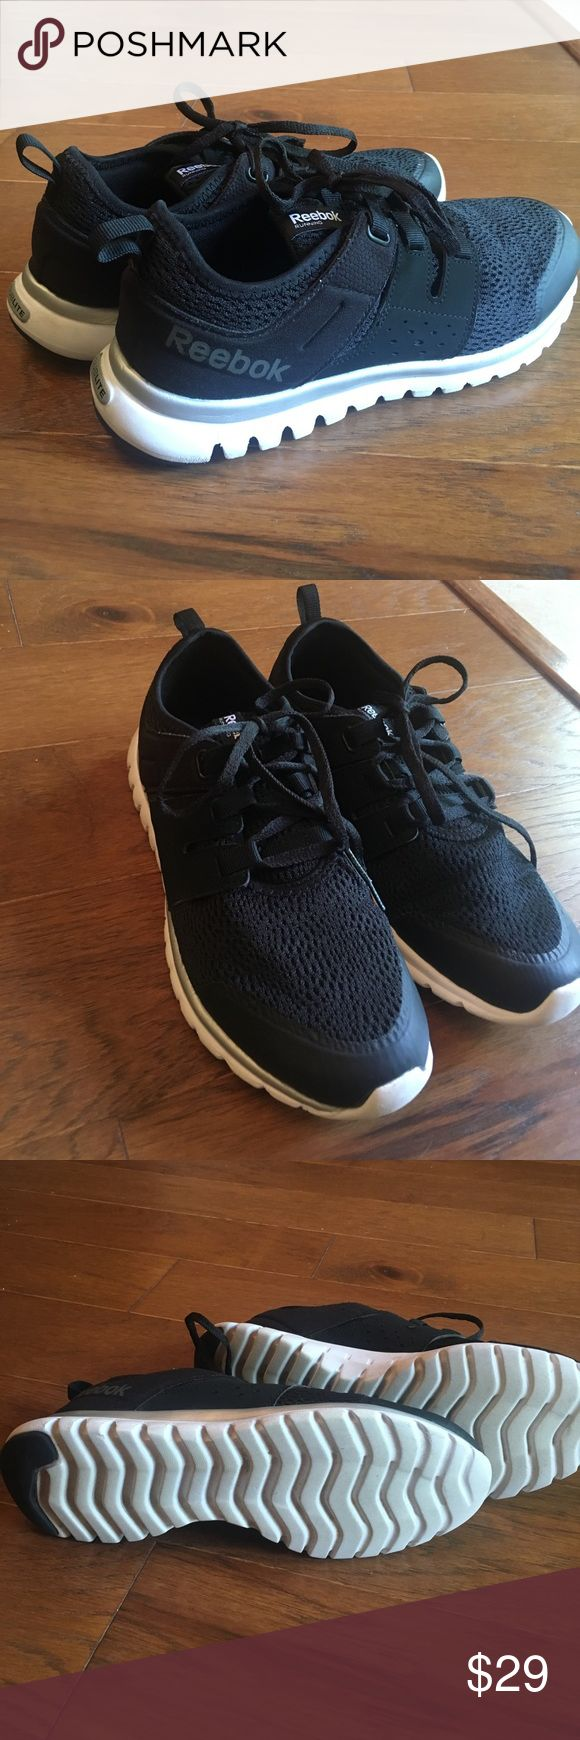 Reebok Sublite Running Shoes with Memory Foam Very good condition, tennis shoes. Great for running and training. Worn a few times, but not much. The sole is a memory foam sole for extra comfort. Reebok Shoes Sneakers